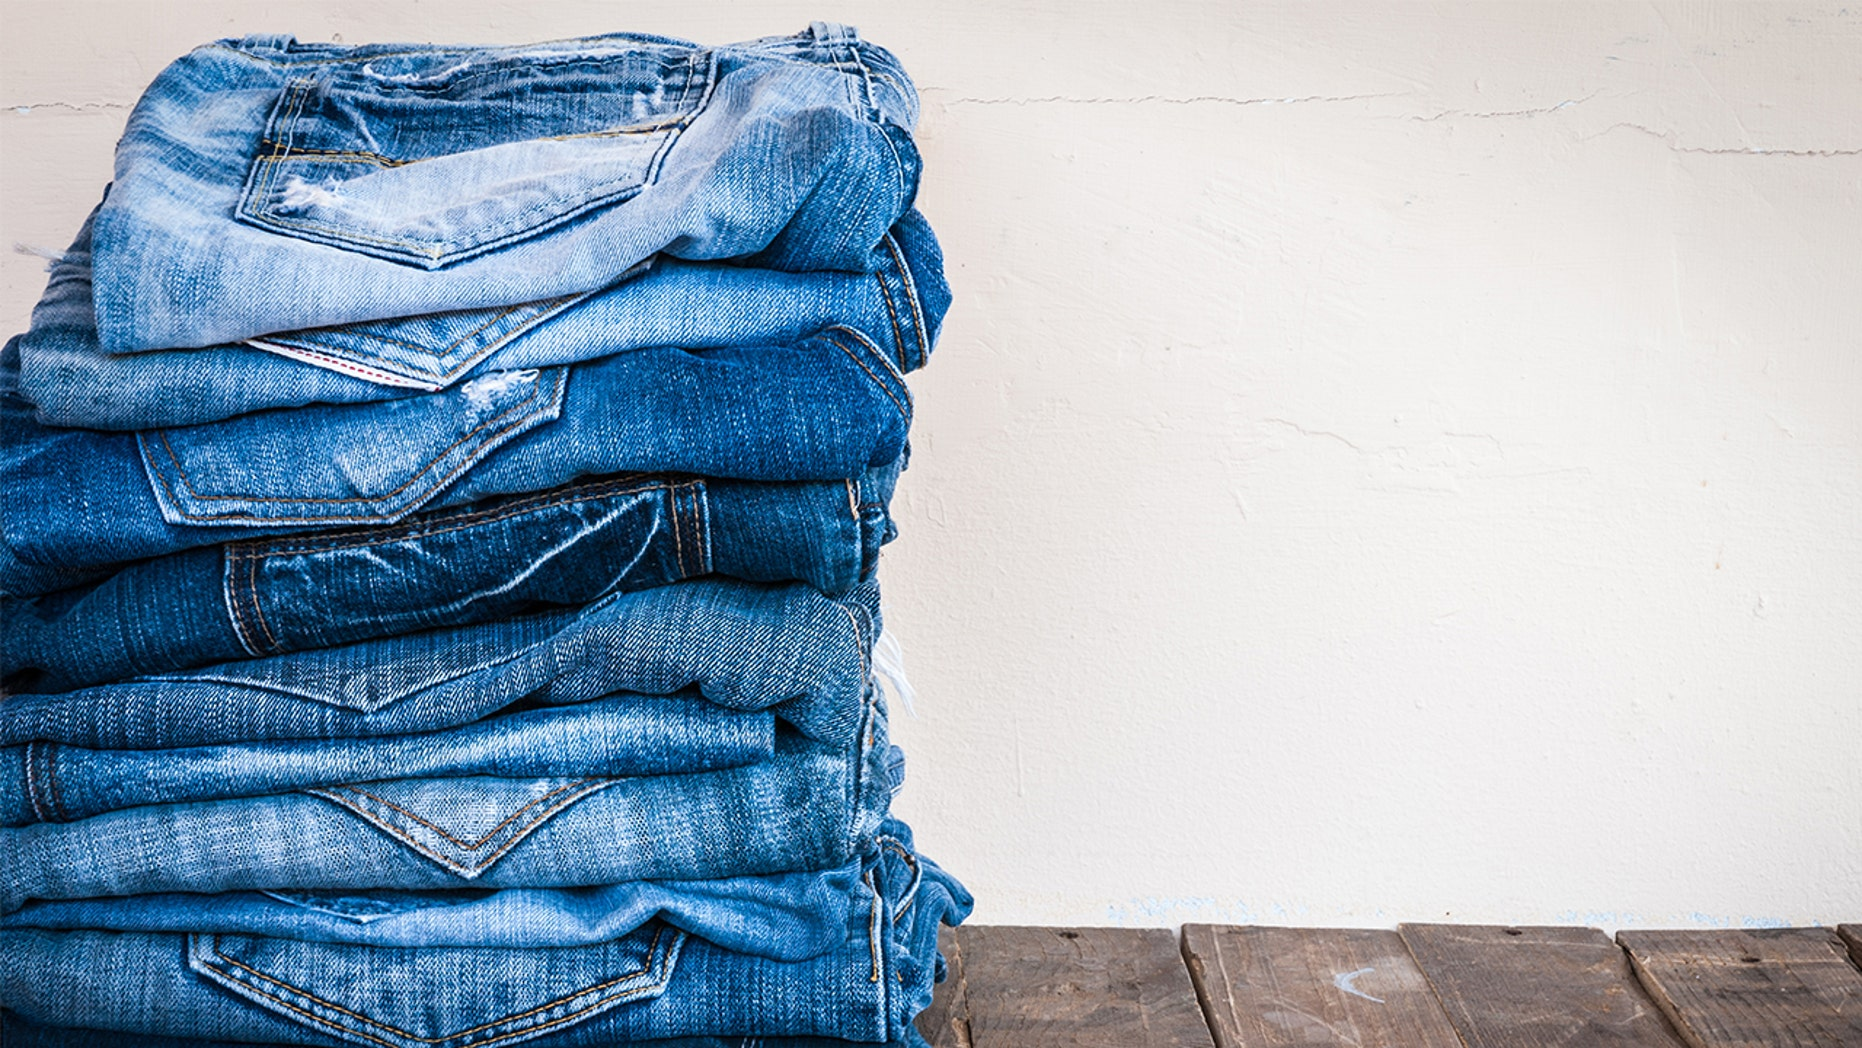 Thanks to new technology, body-optimizing jeans could be the pants of the future.